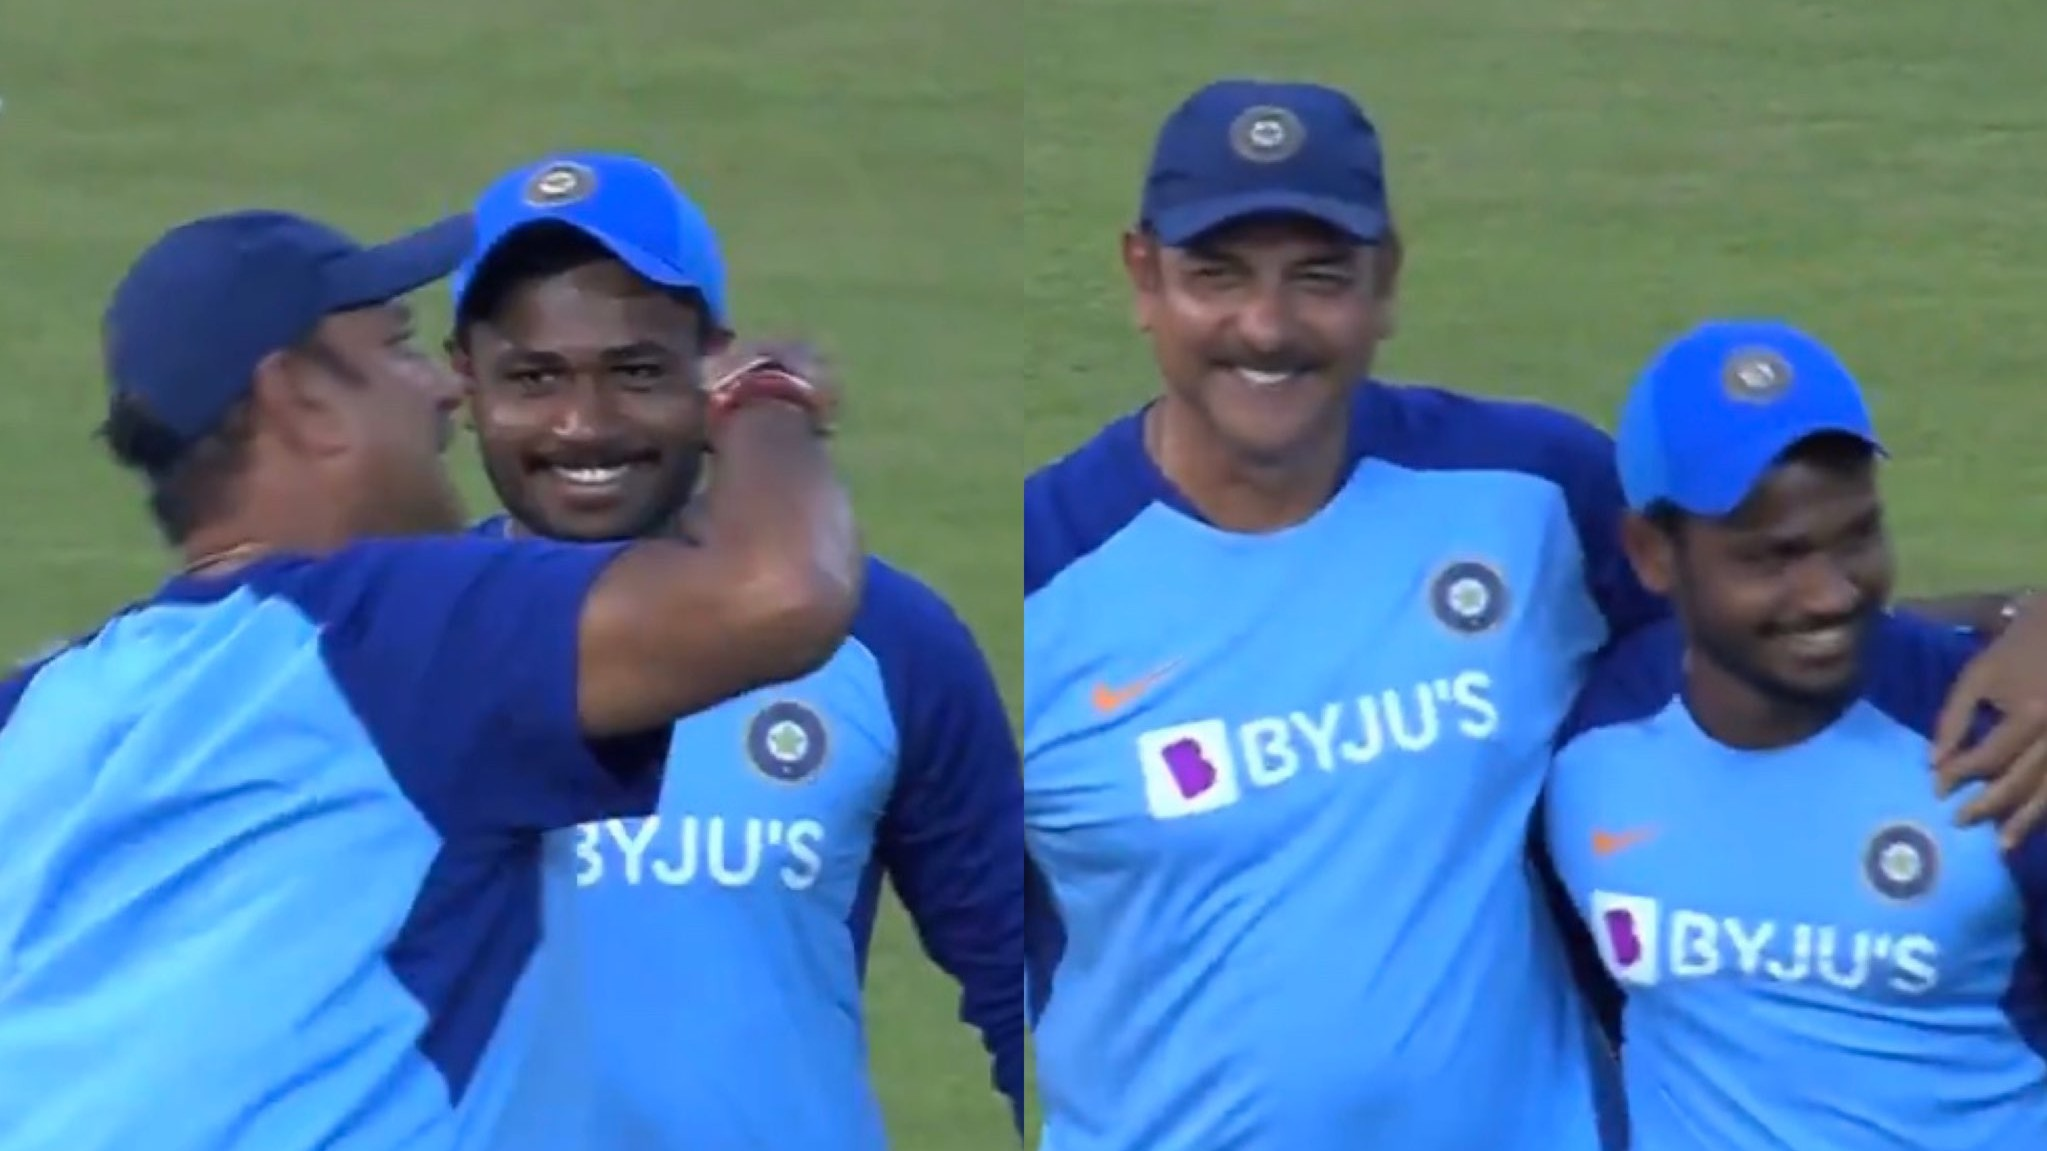 IND v WI 2019: WATCH - Ravi Shastri mock punches Sanju Samson as he is cheered by the crowd